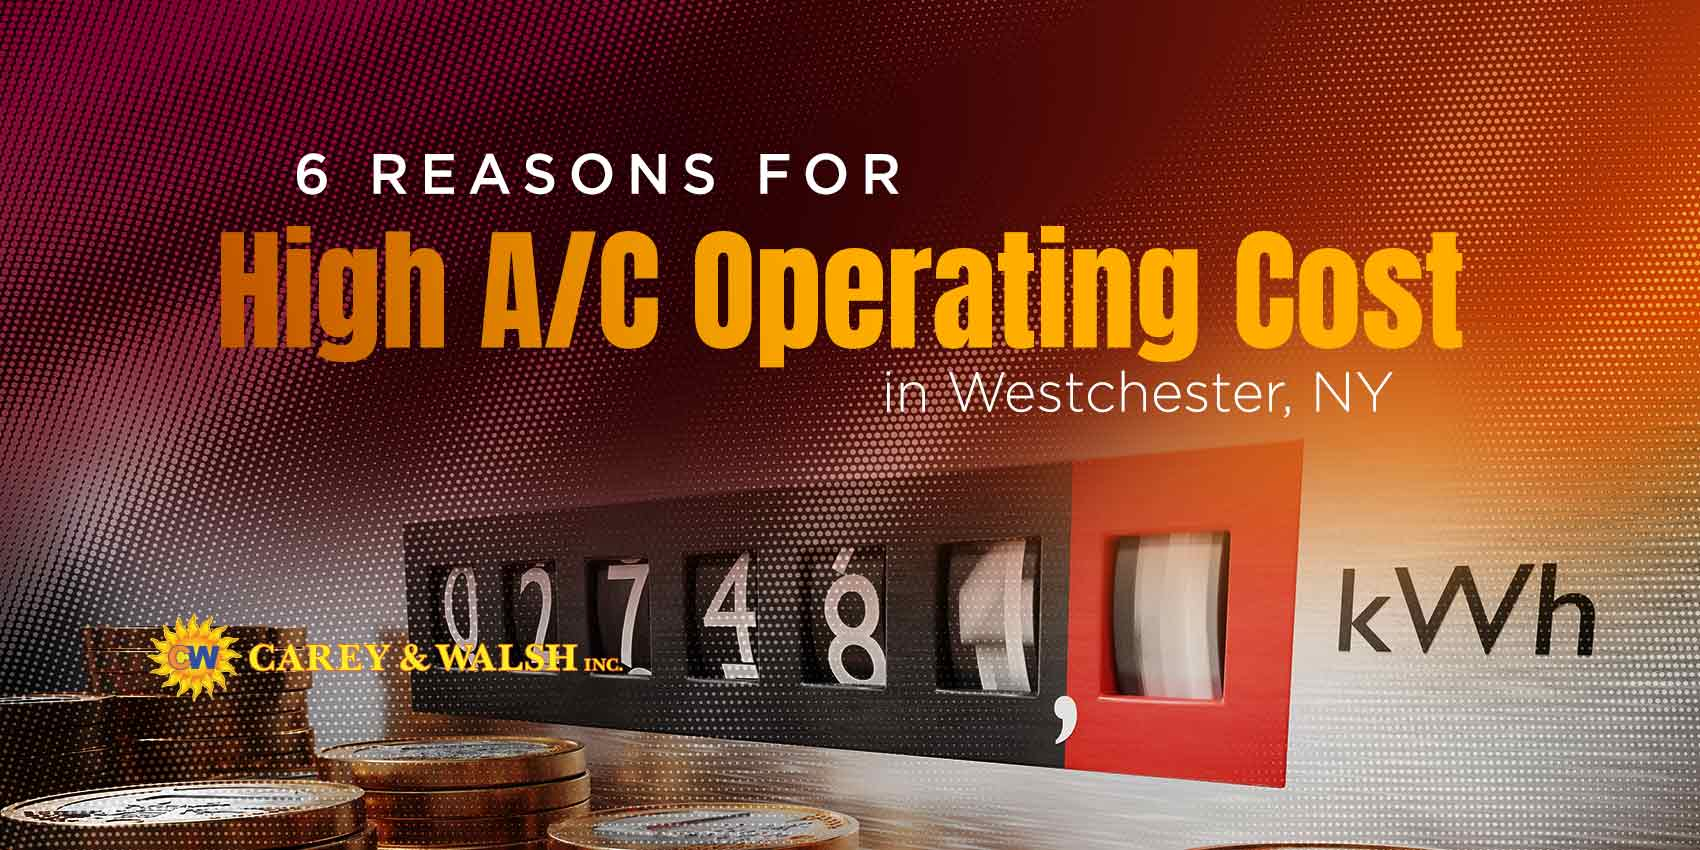 6 Reasons for High A/C Operating Cost in Westchester, NY